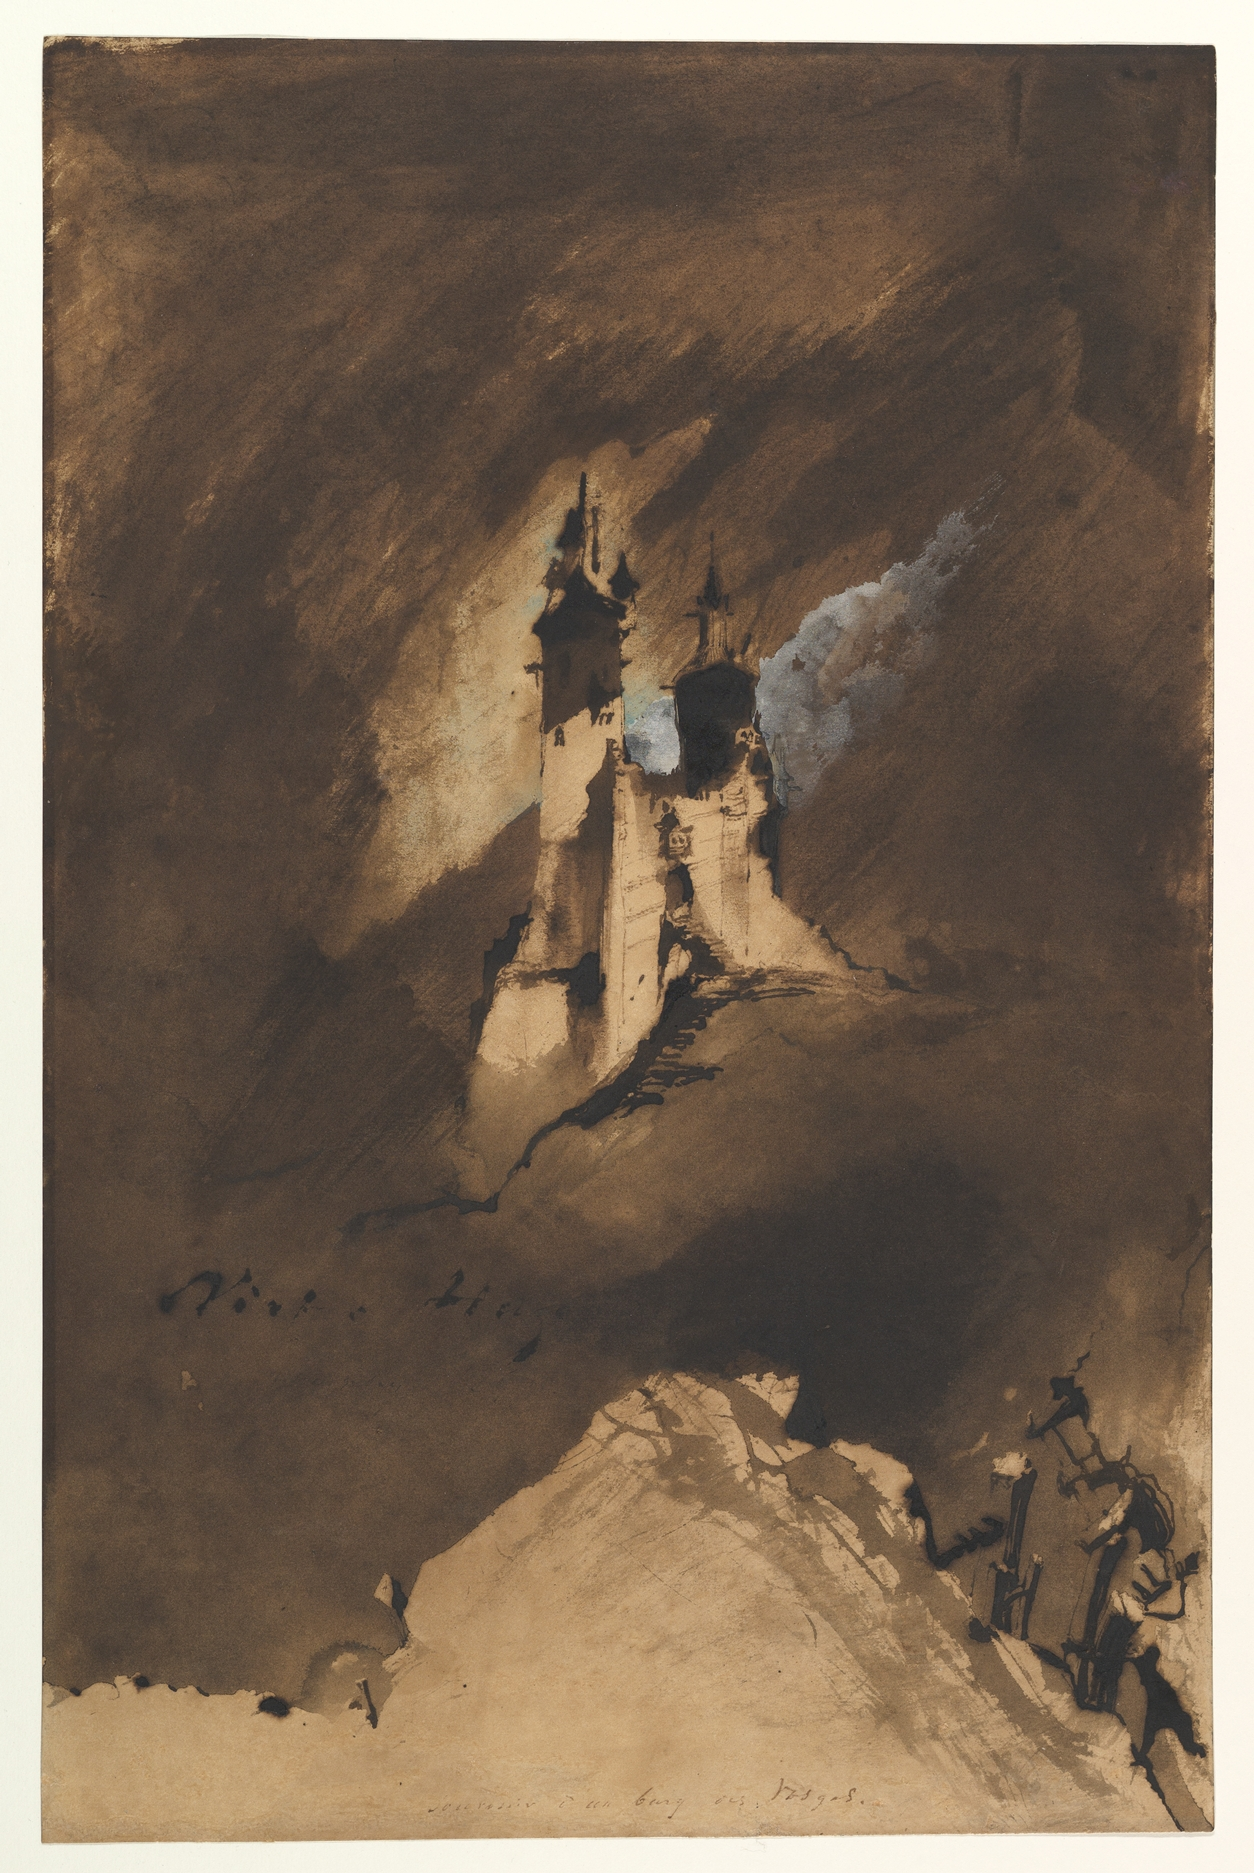 Victor Hugo S Blotto Drawings In Coal Dust And Blood